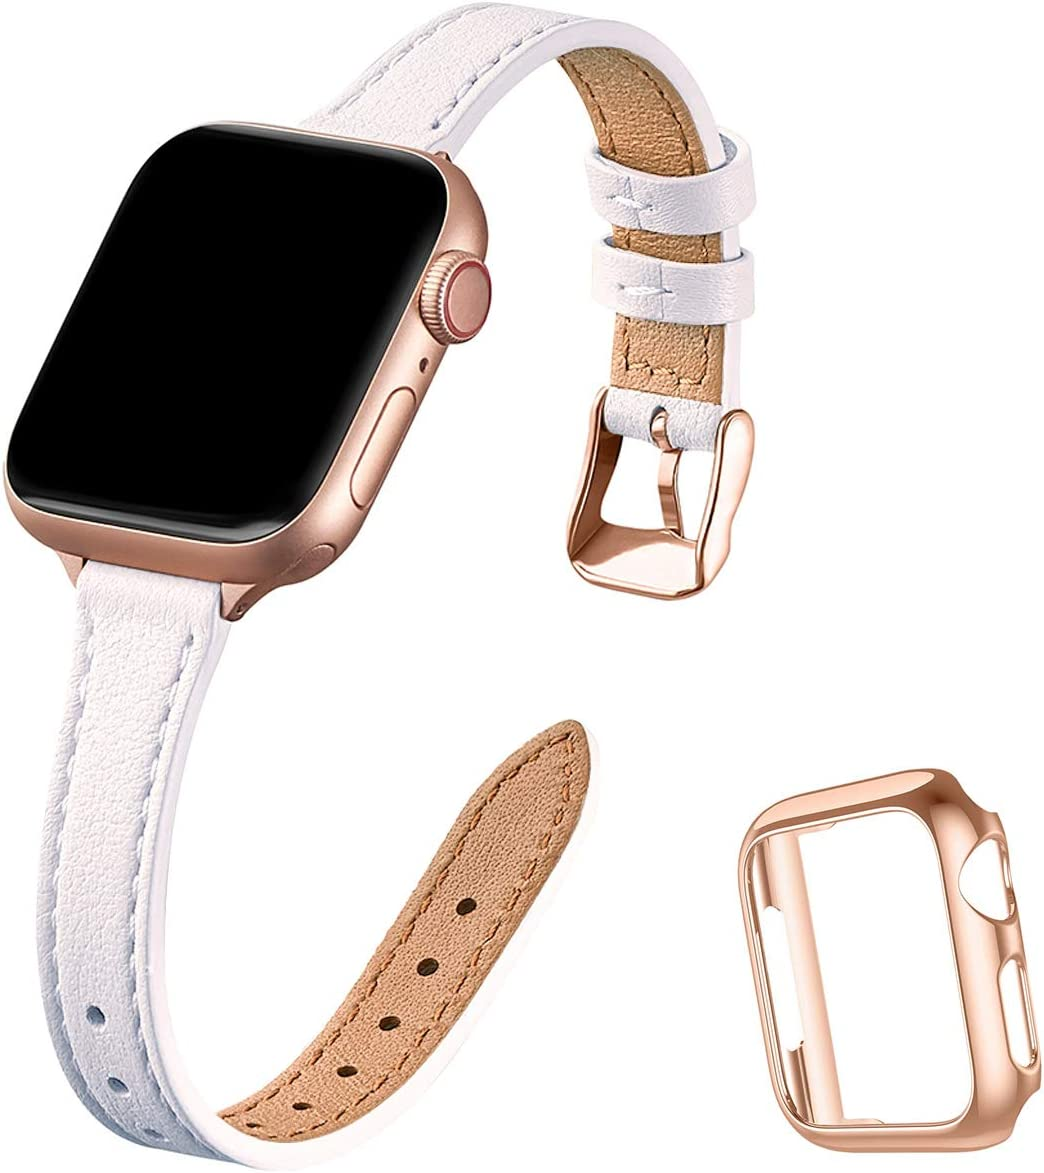 STIROLL Slim Leather Bands Compatible with Apple Watch Band 38mm 40mm 42mm 44mm, Top Grain Leather Watch Thin Wristband for iWatch SE Series 6/5/4/3/2/1 (White with Rose Gold, 42mm/44mm)